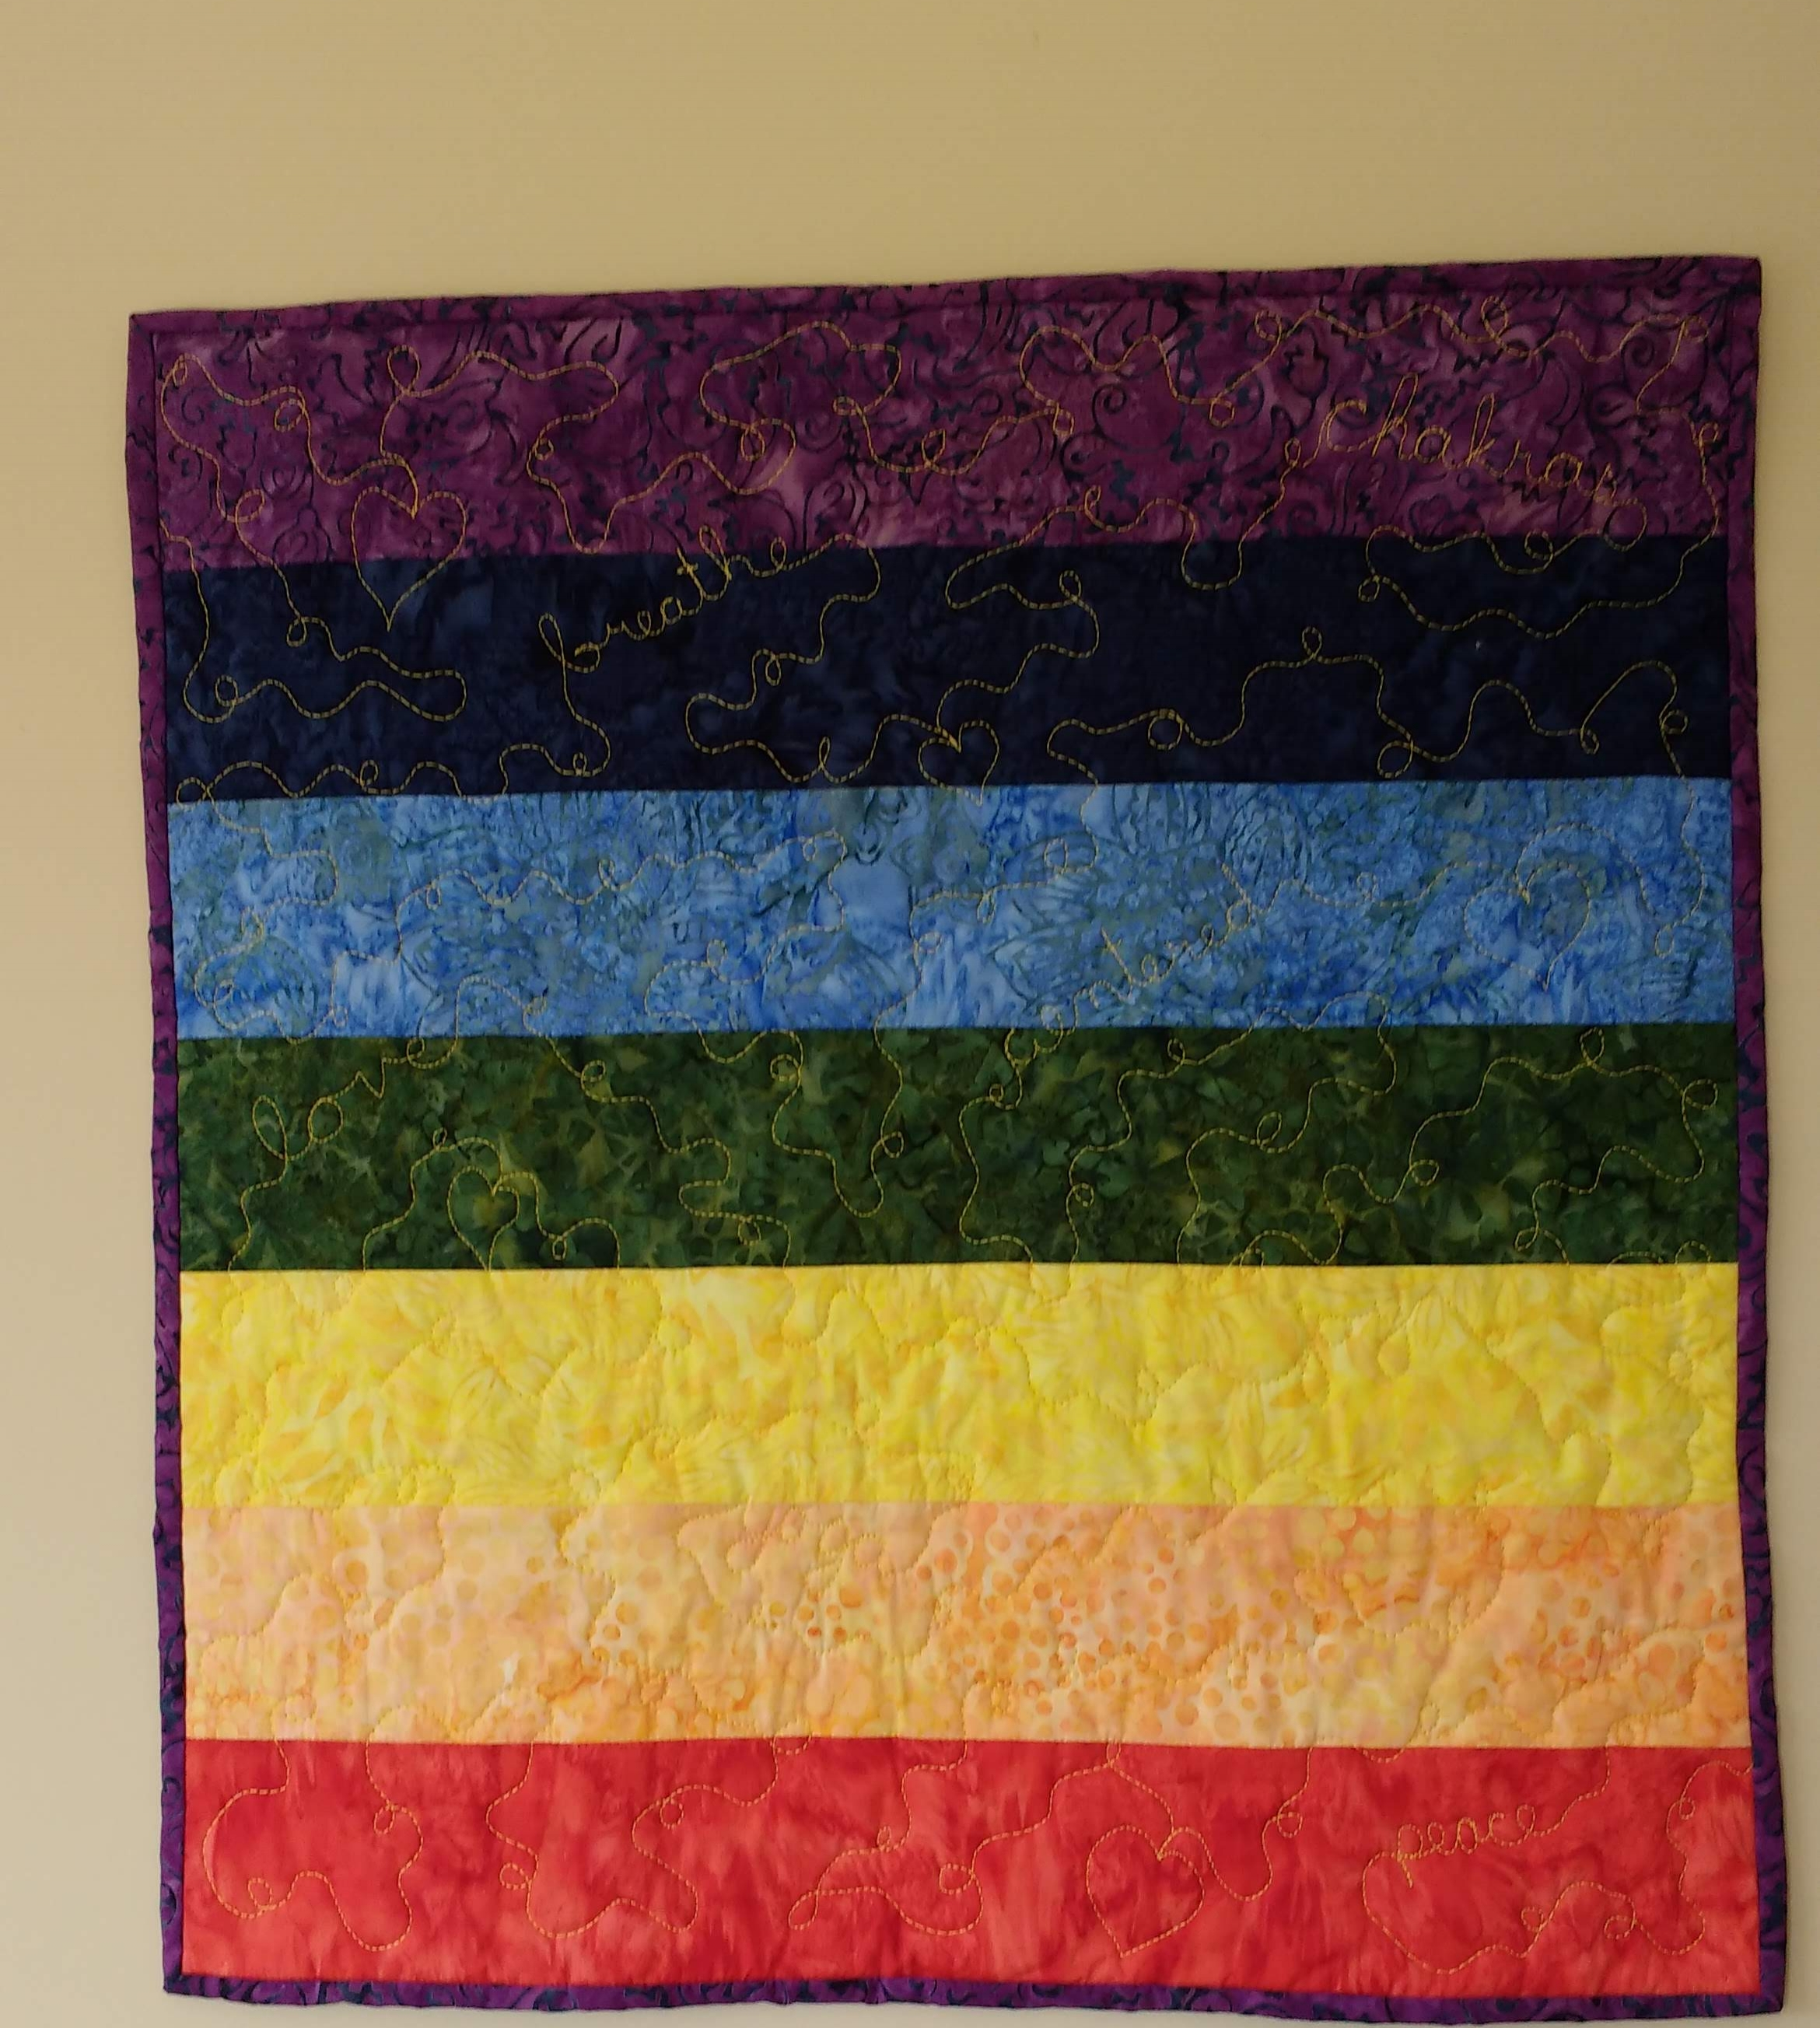 """This is my Original Reiki Wall Art design based on Chakra colors. I've quilted 7 Positive words within this piece: can you find them all?? I can custom design one for you as well, using my own word choice, or yours for someone special! Great for Yoga, Reiki, LBGTQ or just for the beautiful colors, and Happy message! I can quilt up to 8 words within this 20 """" size. You can see this piece on my Etsy shop CustomQuiltsByPaula, or Contact me if you're interested and we can chat -)"""